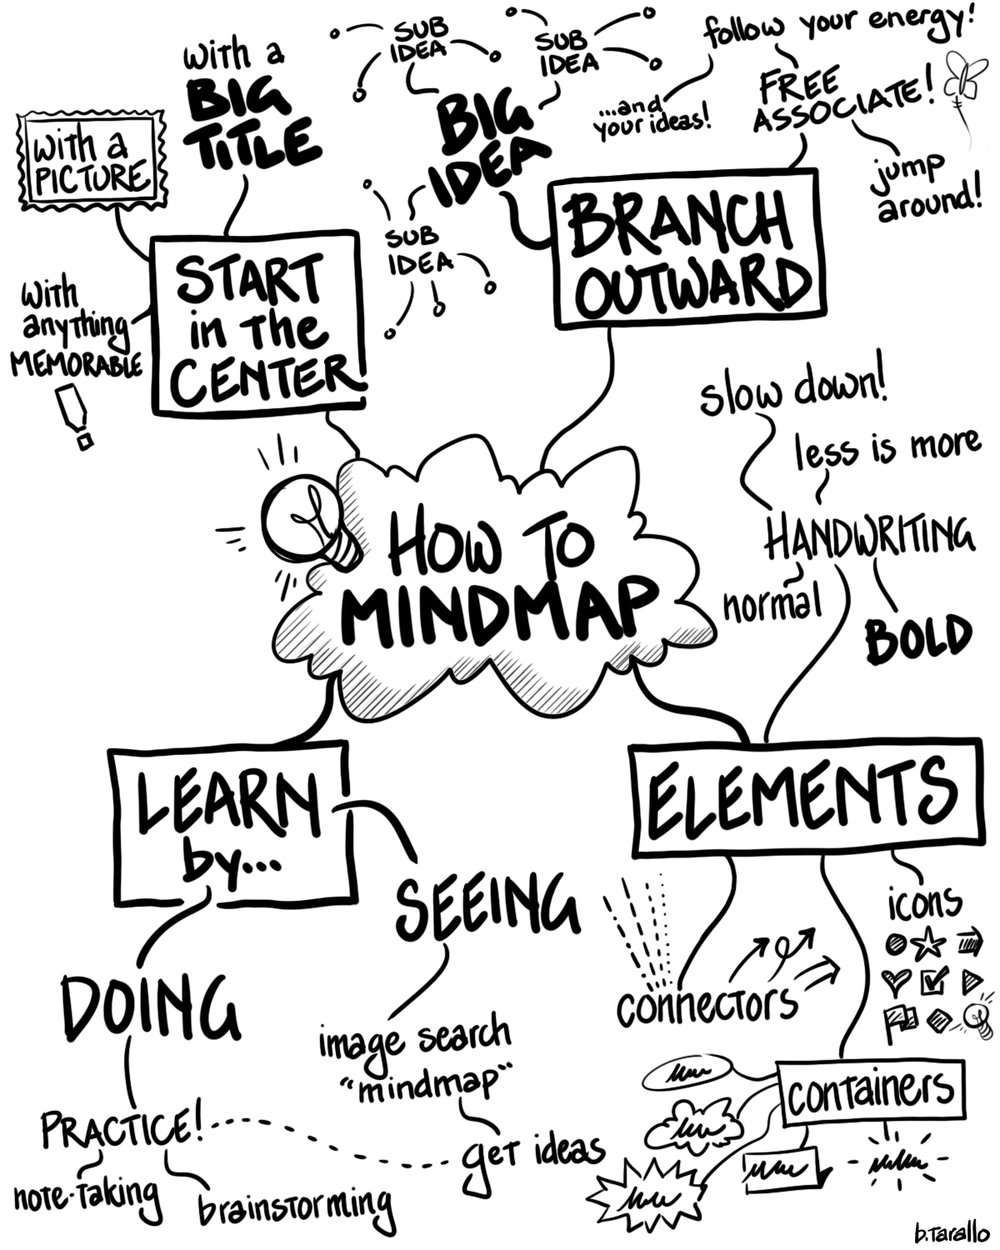 A basic, quick-start guide on mindmapping.